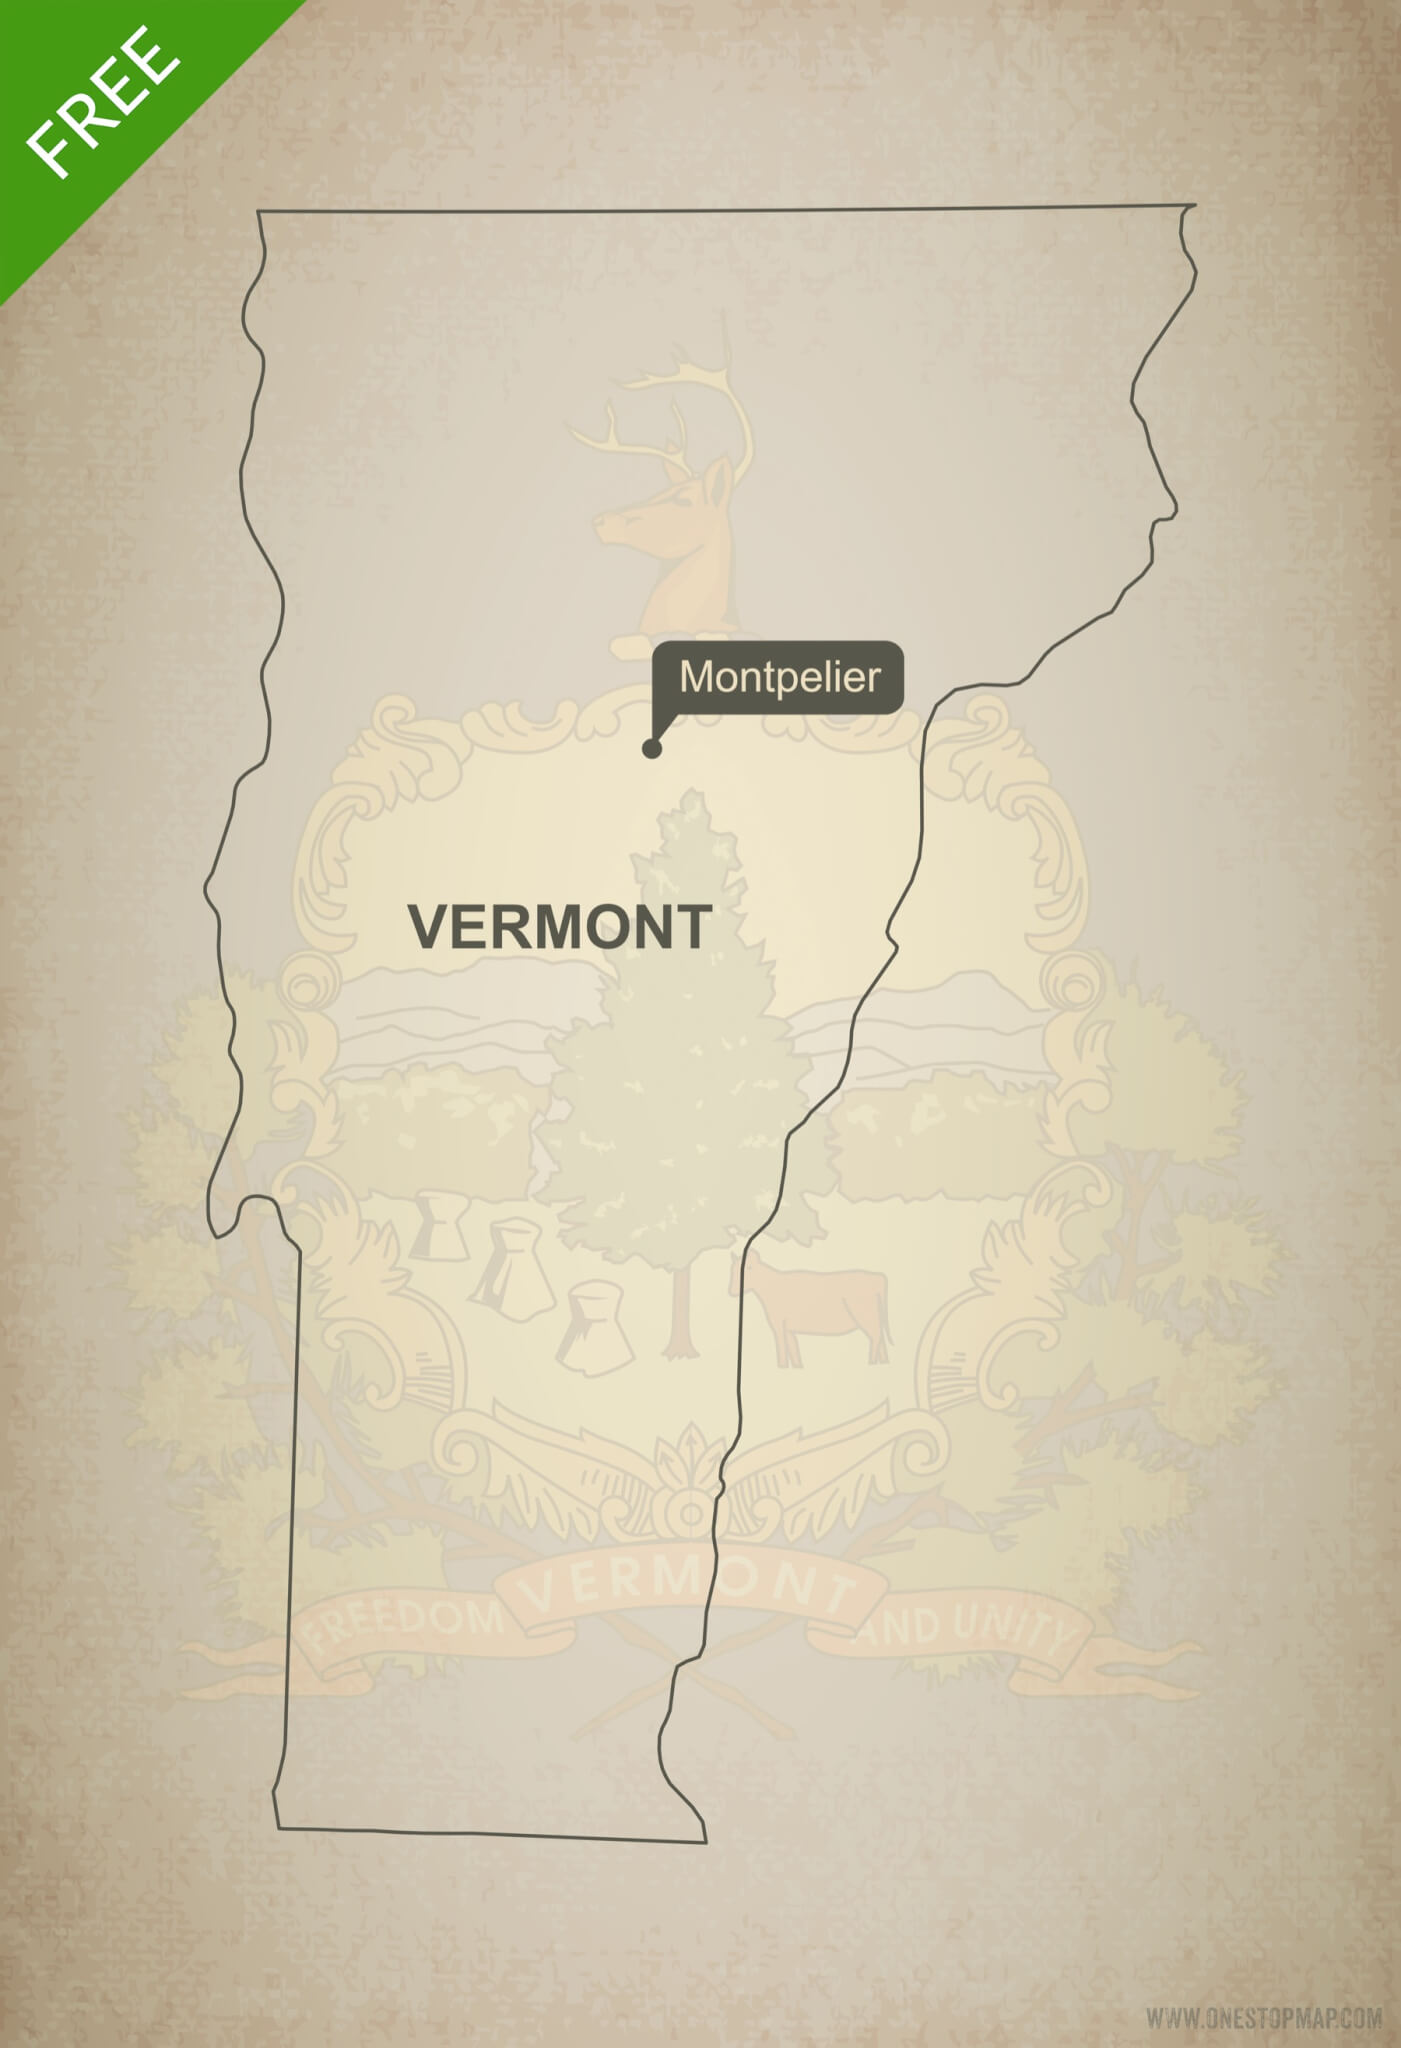 Free Vector Map Of Vermont Outline One Stop Map - Map vermont